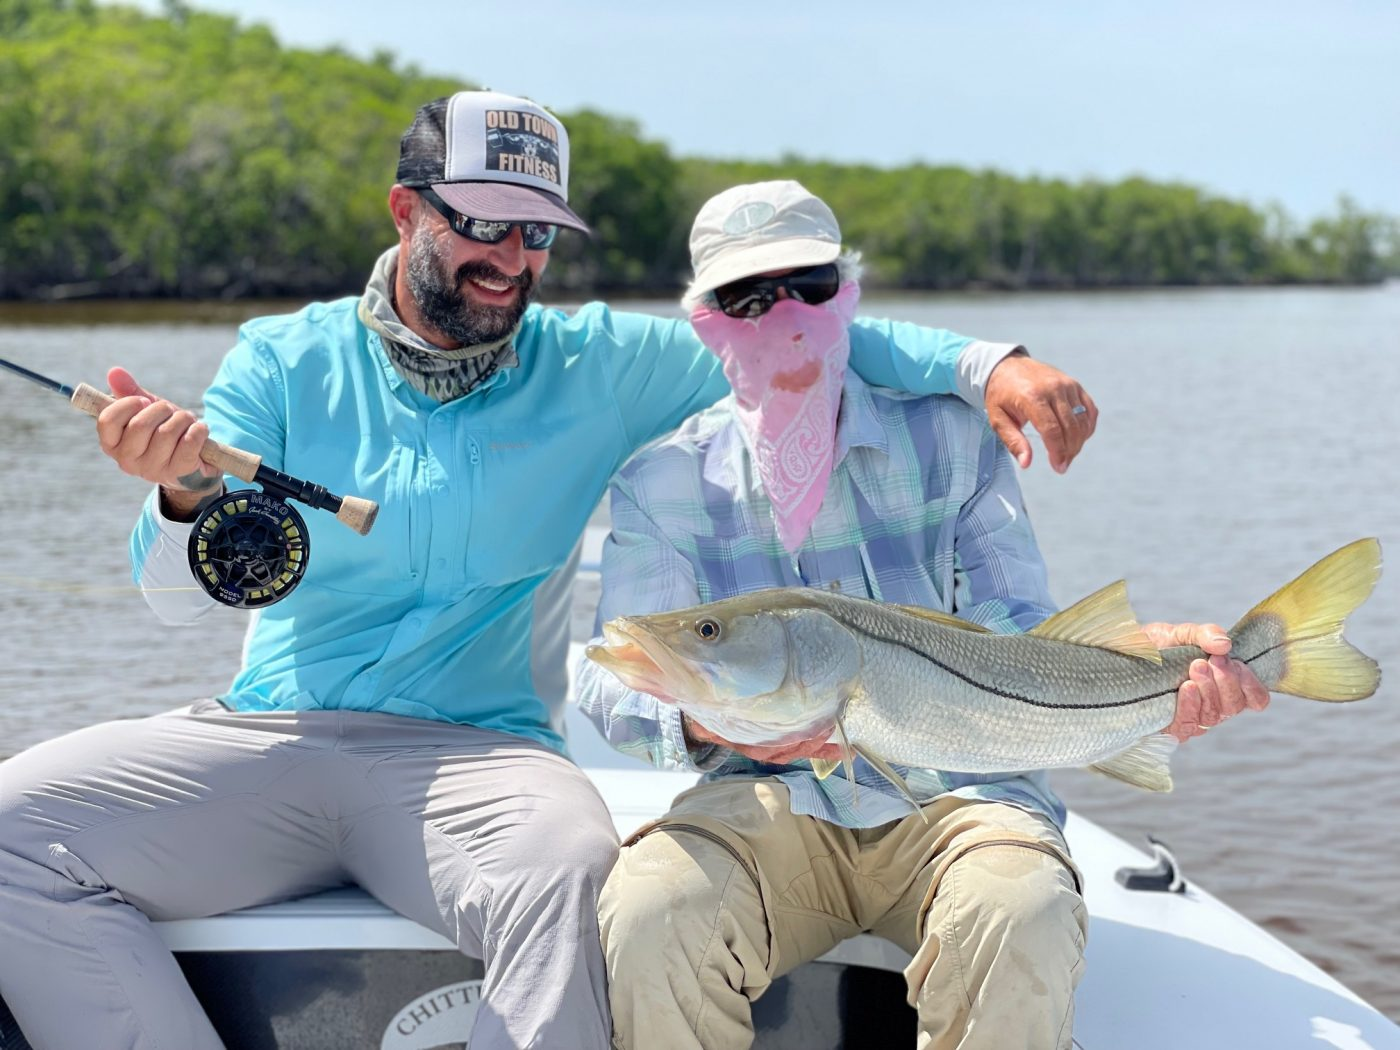 Nate and Steven with a nice snook, caught on 4# tippet. Photo Kat Vallilee, guiding Steve Huff